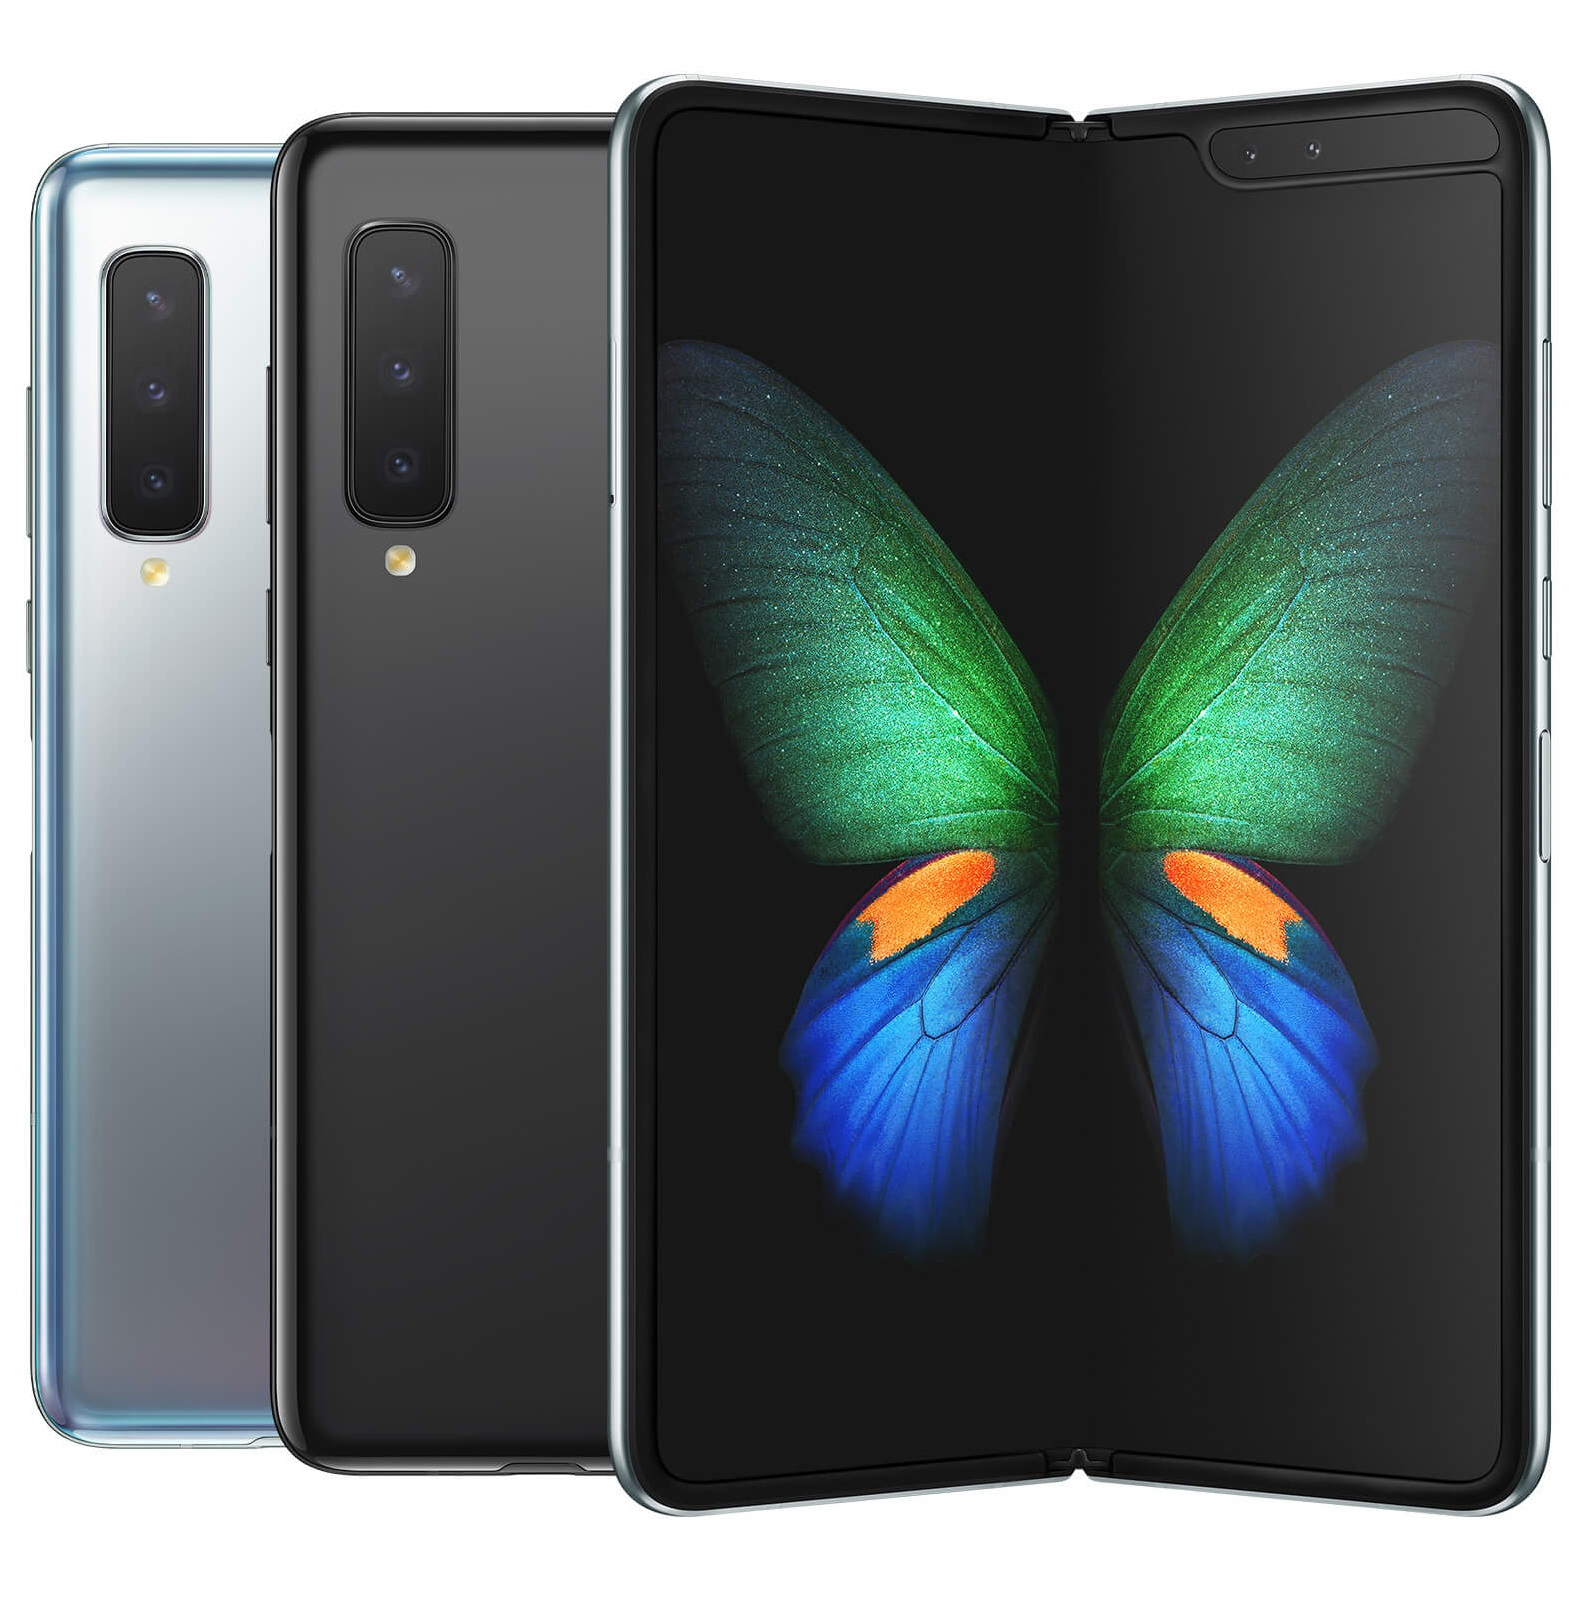 Galaxy Fold Philippines, It's Official: Samsung Galaxy Fold is Coming to the Philippines, Gadget Pilipinas